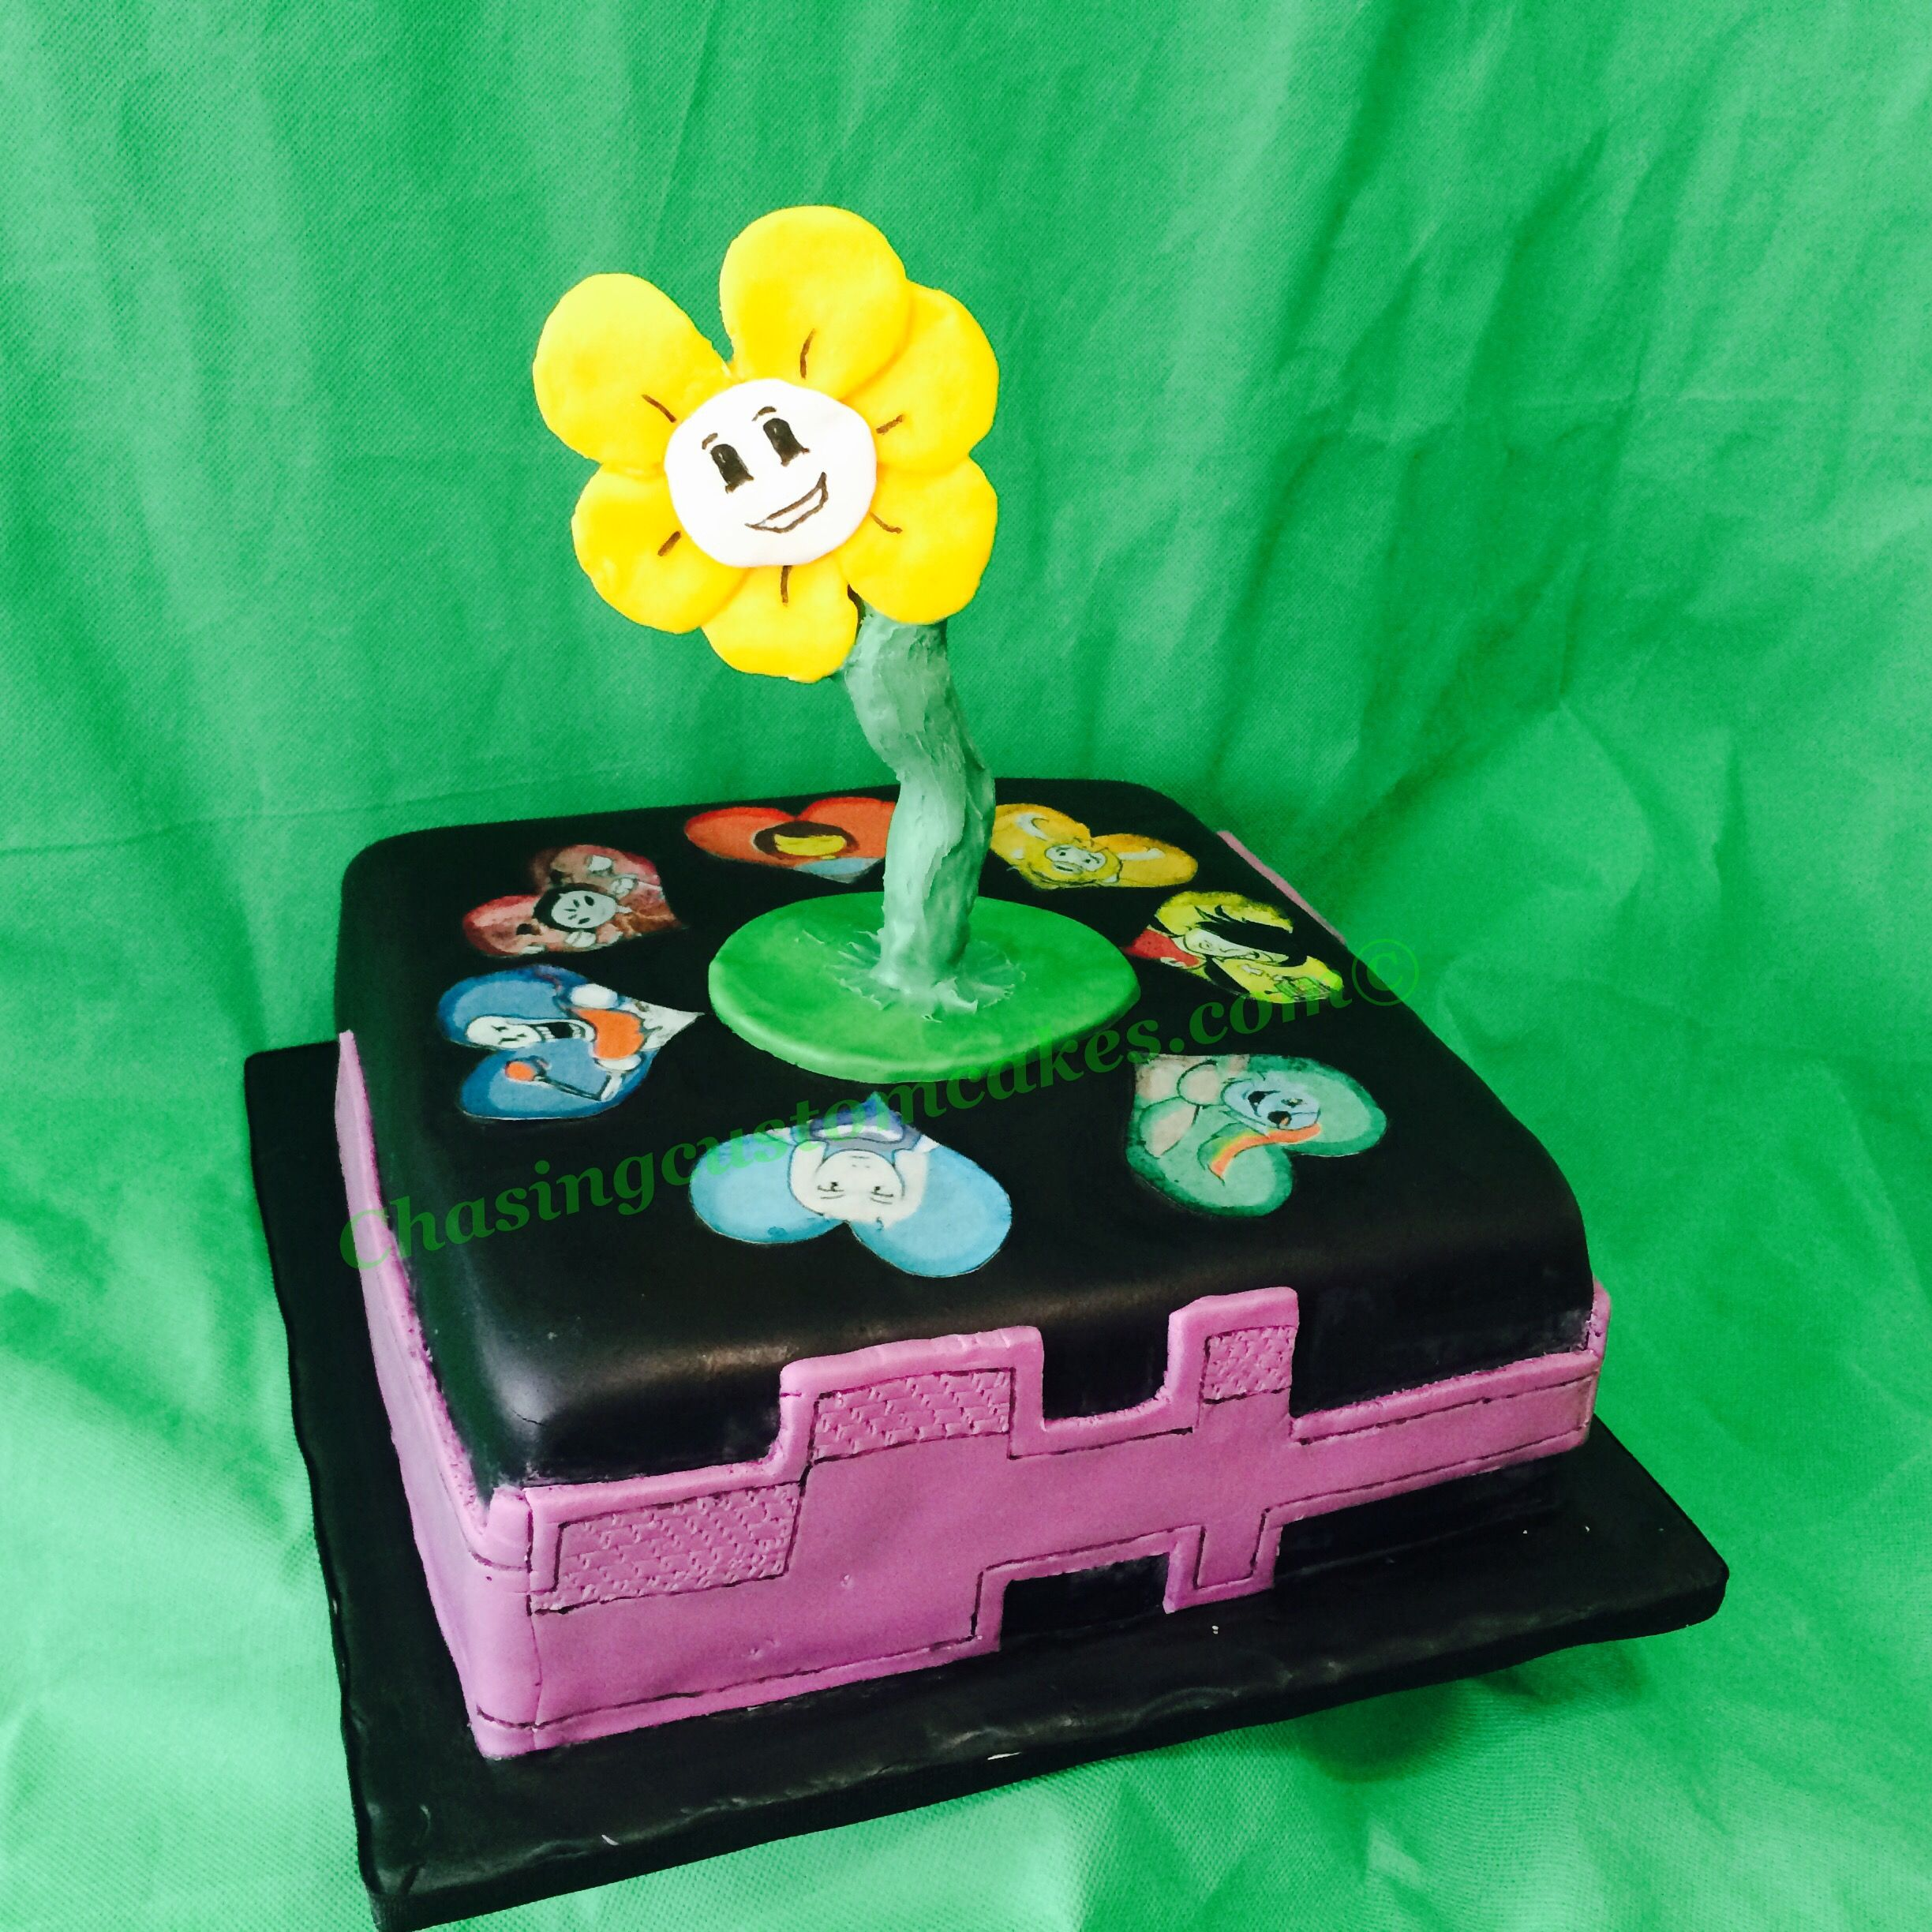 Undertale Cake Cake and Video games